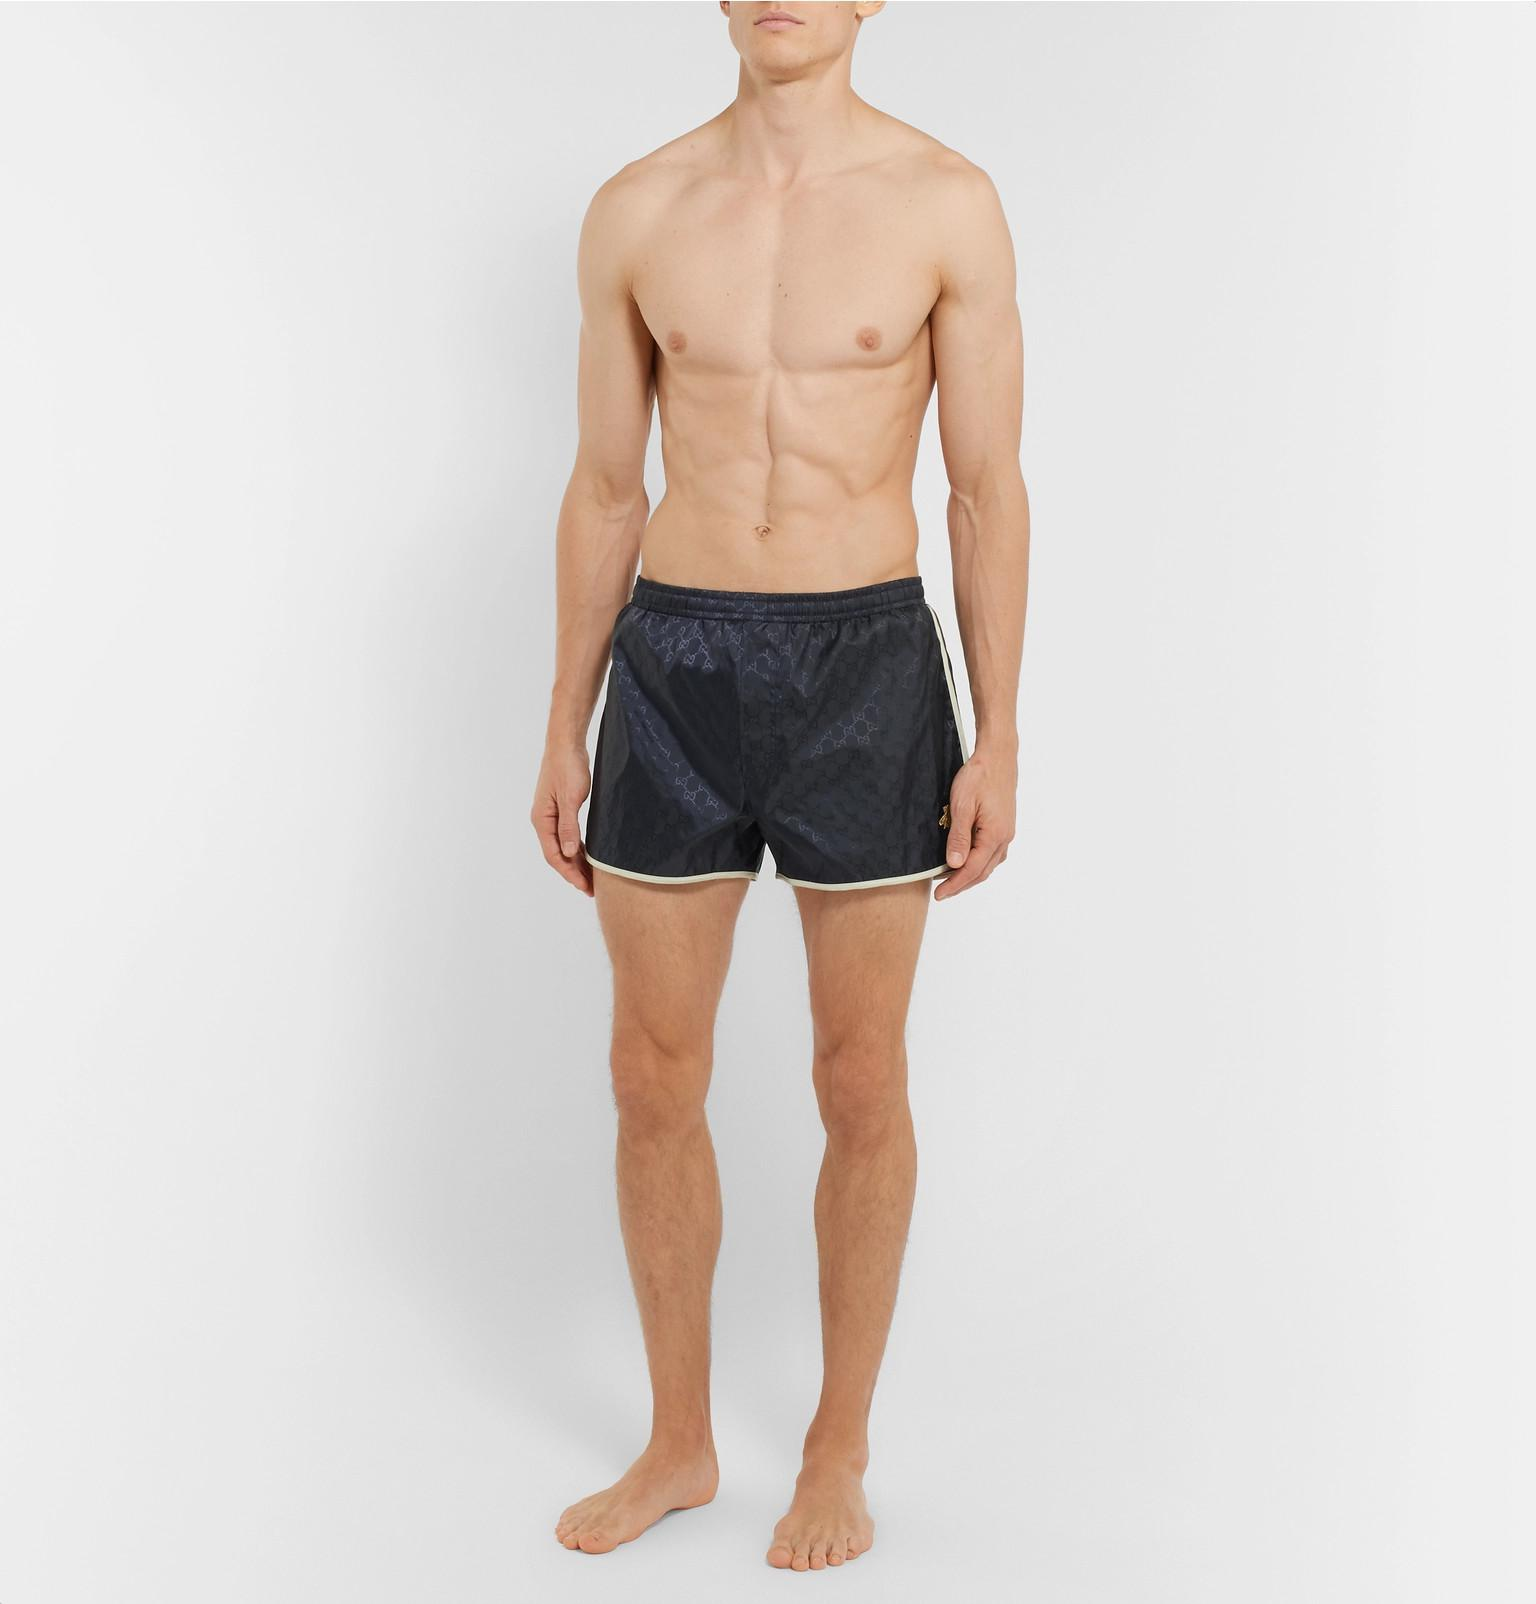 a05aa4551a Tap to visit site. Gucci - Blue Short-length Embroidered Jacquard Swim  Shorts for Men - Lyst